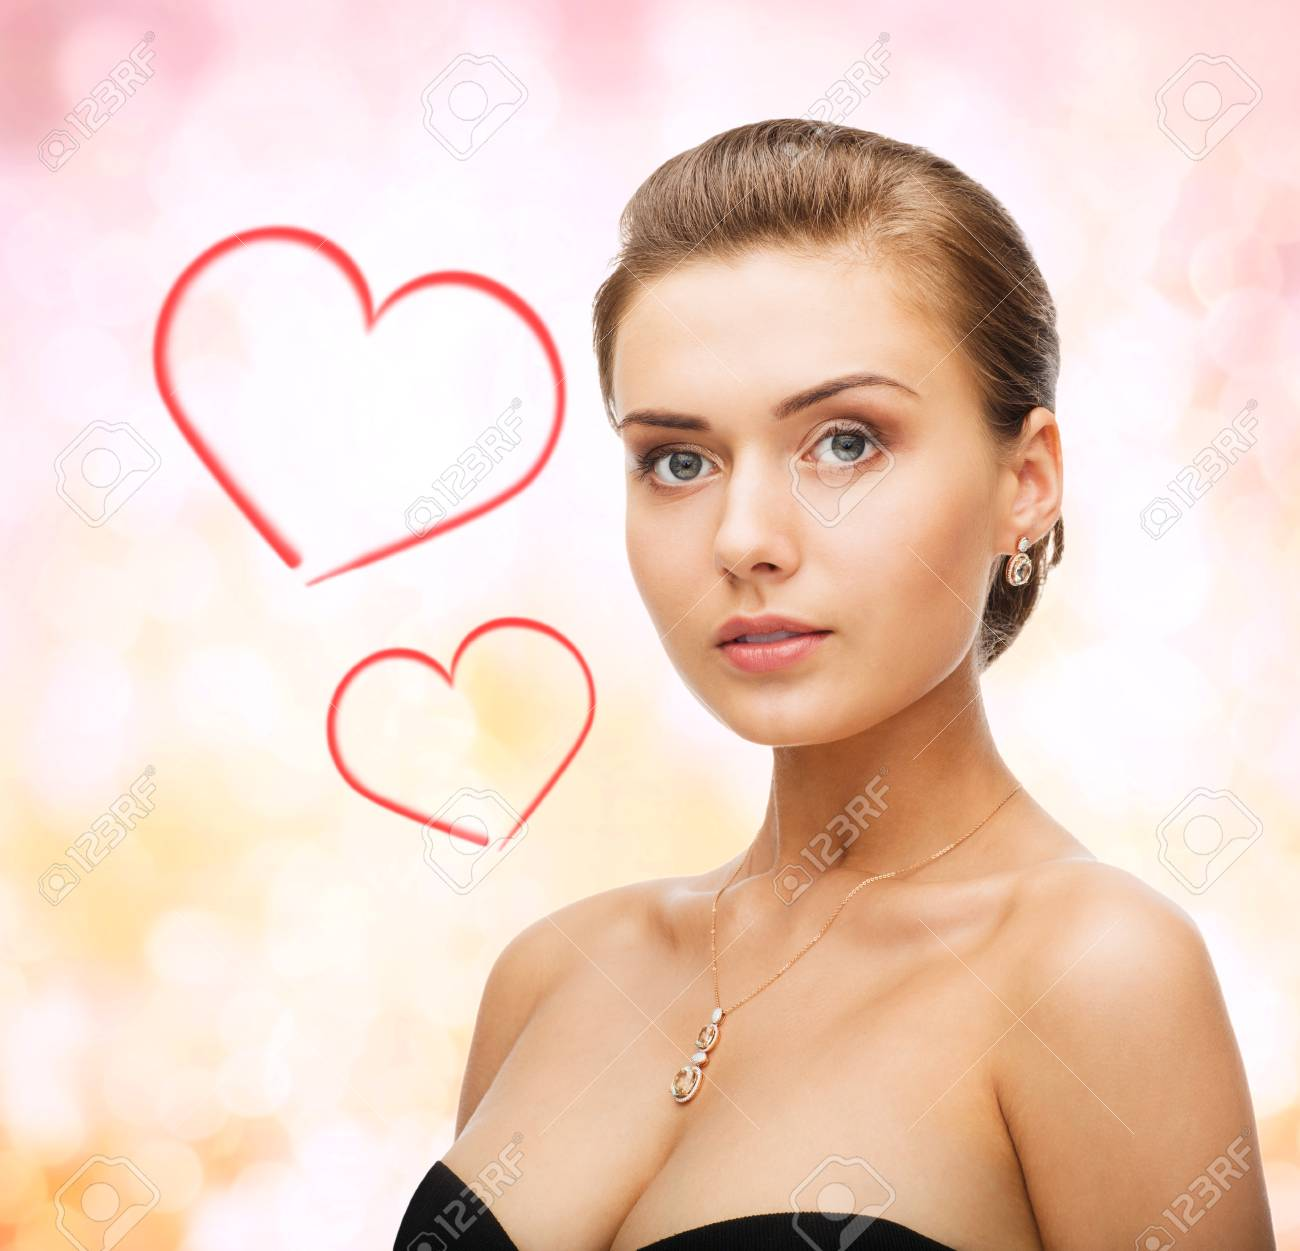 beauty and jewelry concept - woman wearing shiny diamond earrings and pendant Stock Photo - 24371230